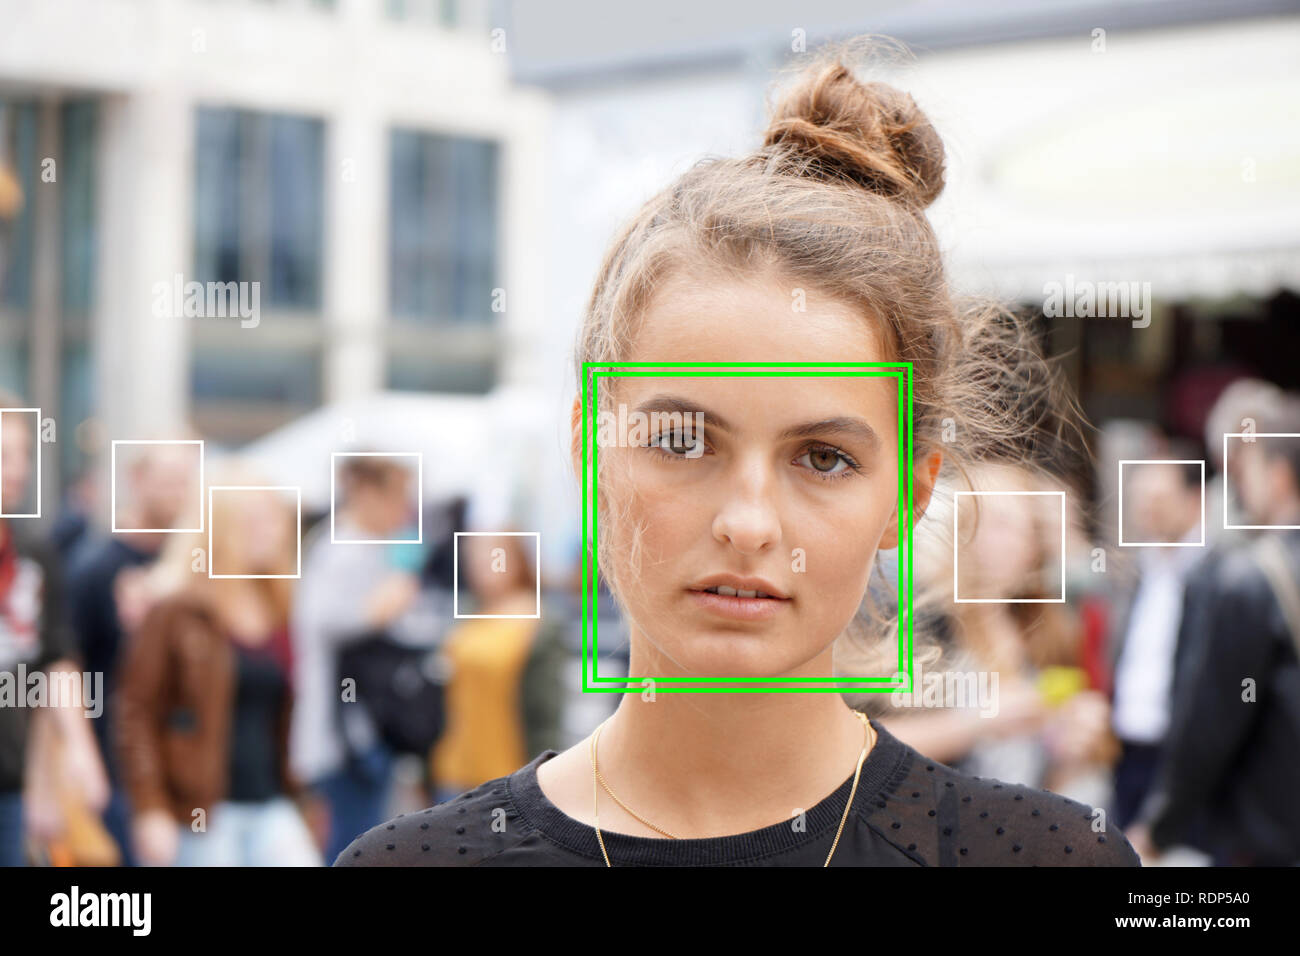 Face Surveillance Video Stock Photos & Face Surveillance Video Stock